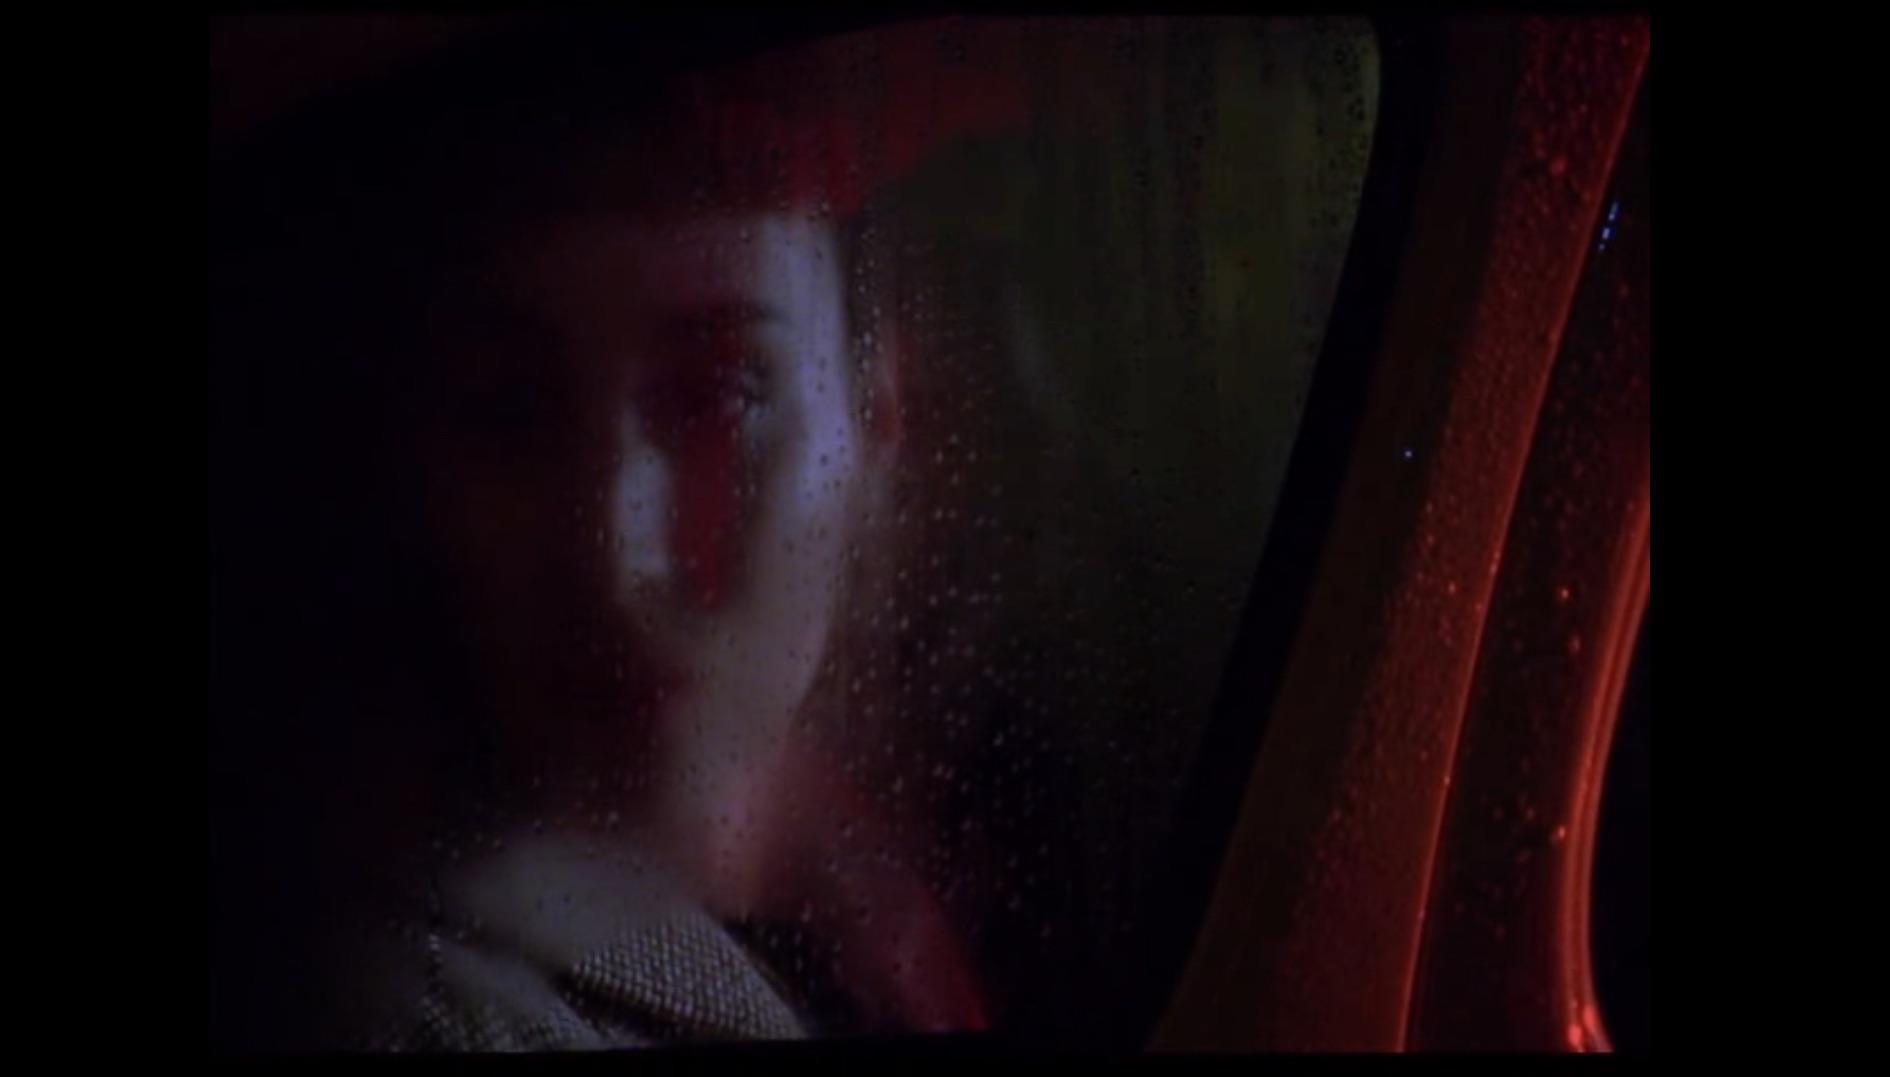 Figure 2: Therese in a car at night, remembering.